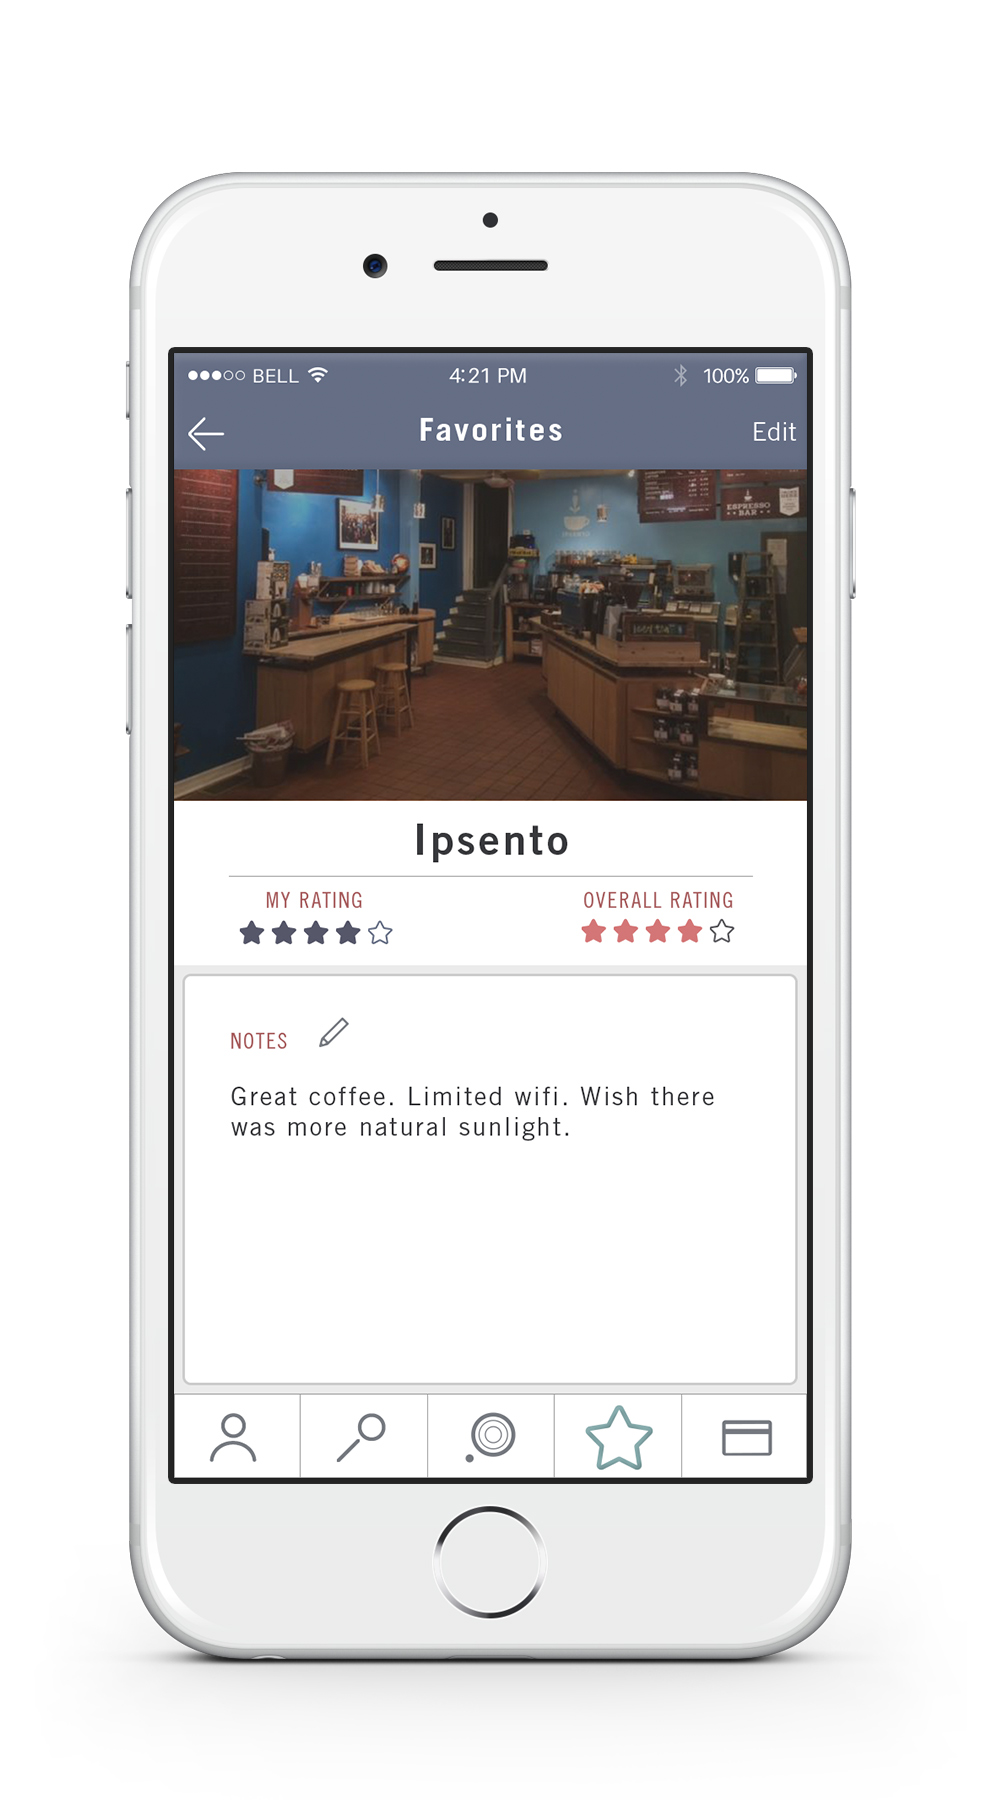 Notes    —   Locations that have been favorited or added to the user's history have note profiles where the user can add brief descriptions about their experience, such as what drink they ordered.